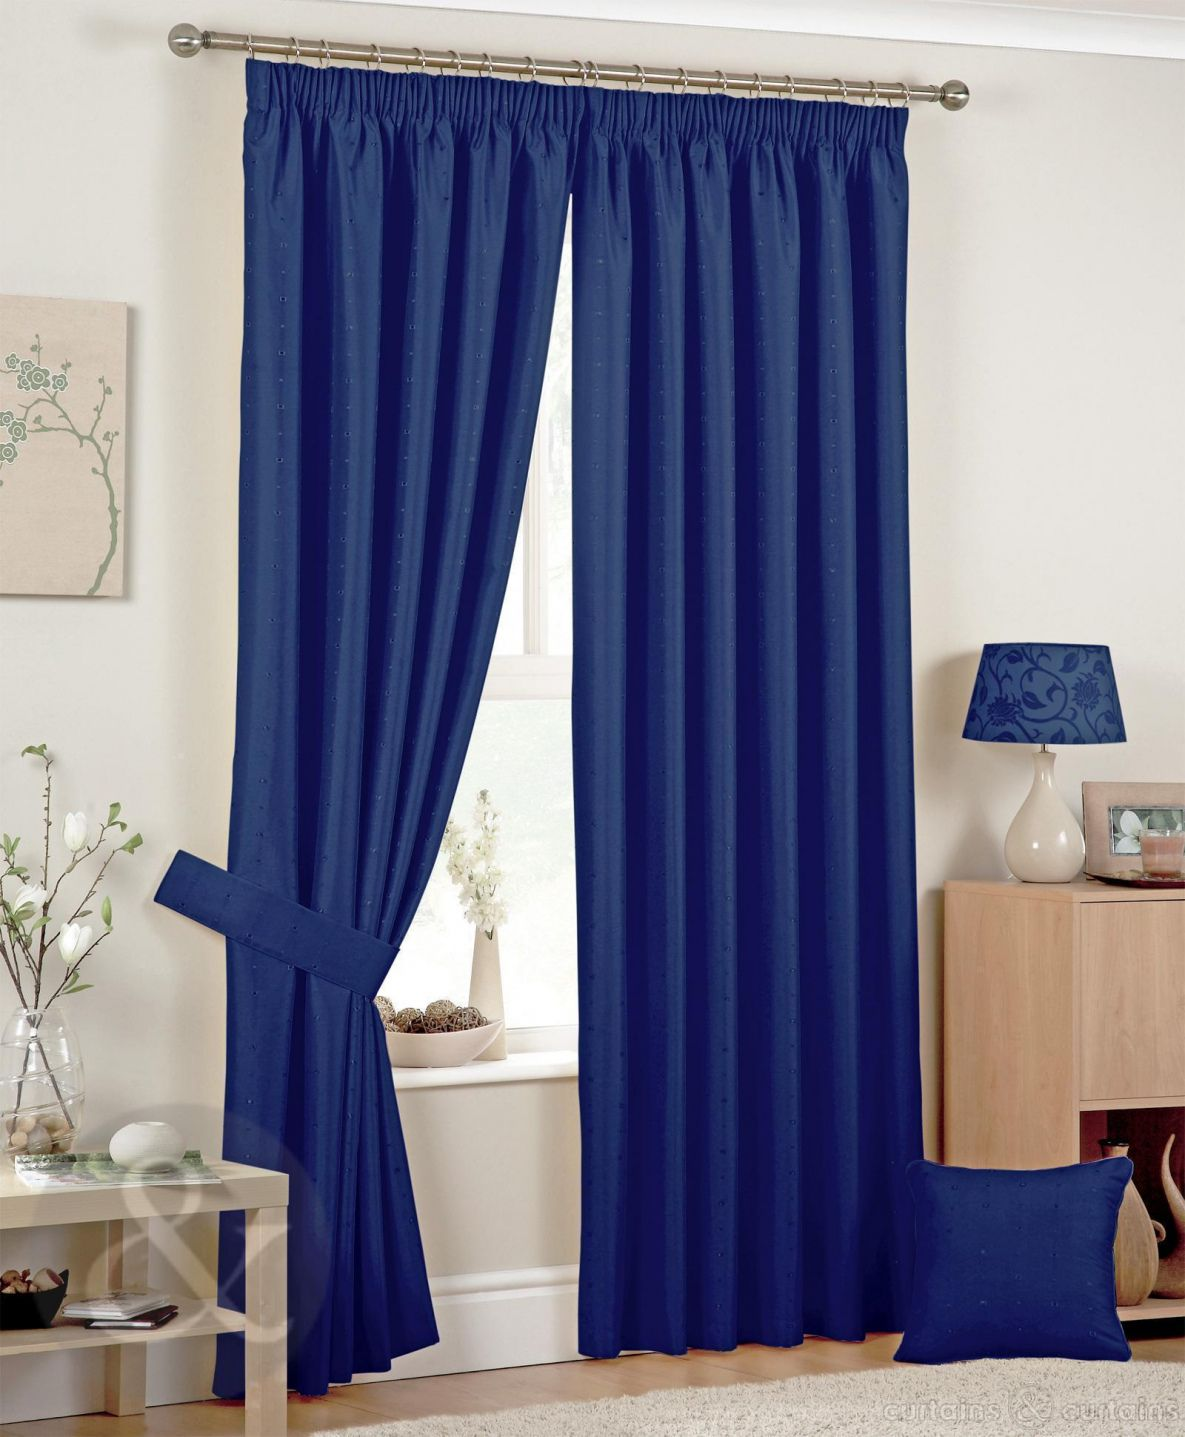 Blue Bedroom Curtains